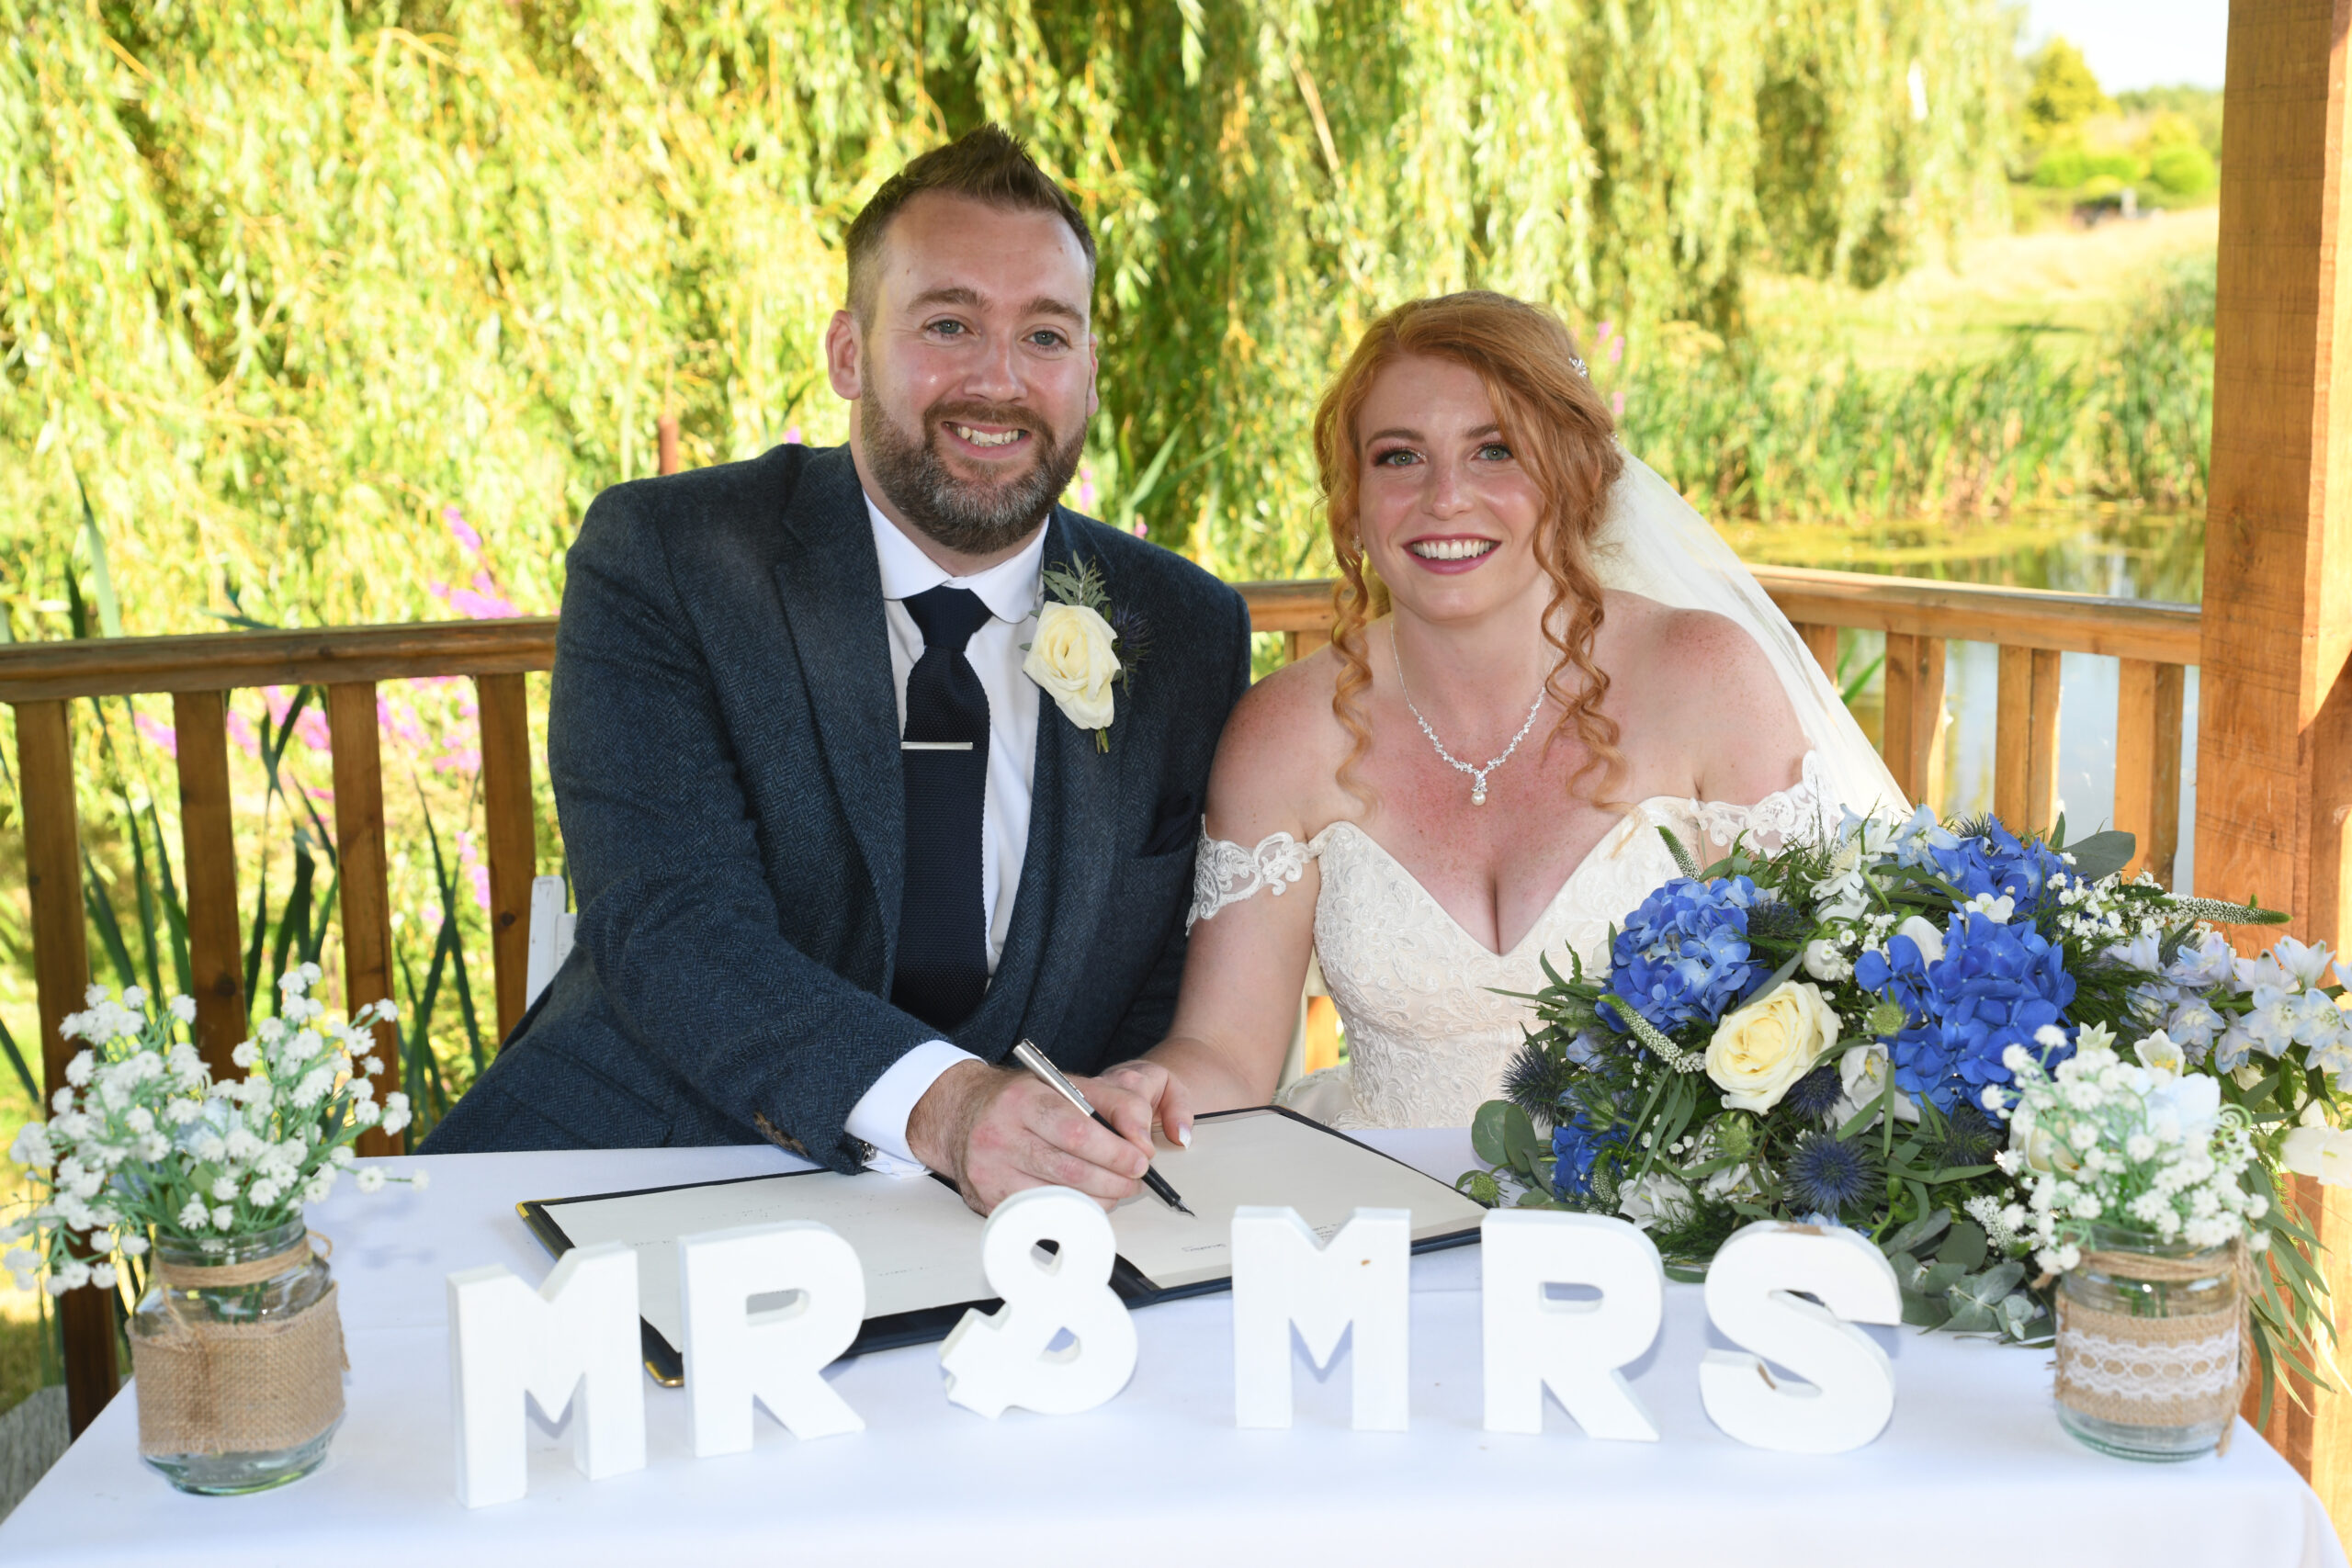 Outside Ceremony Wedding Photography at Wootton Park